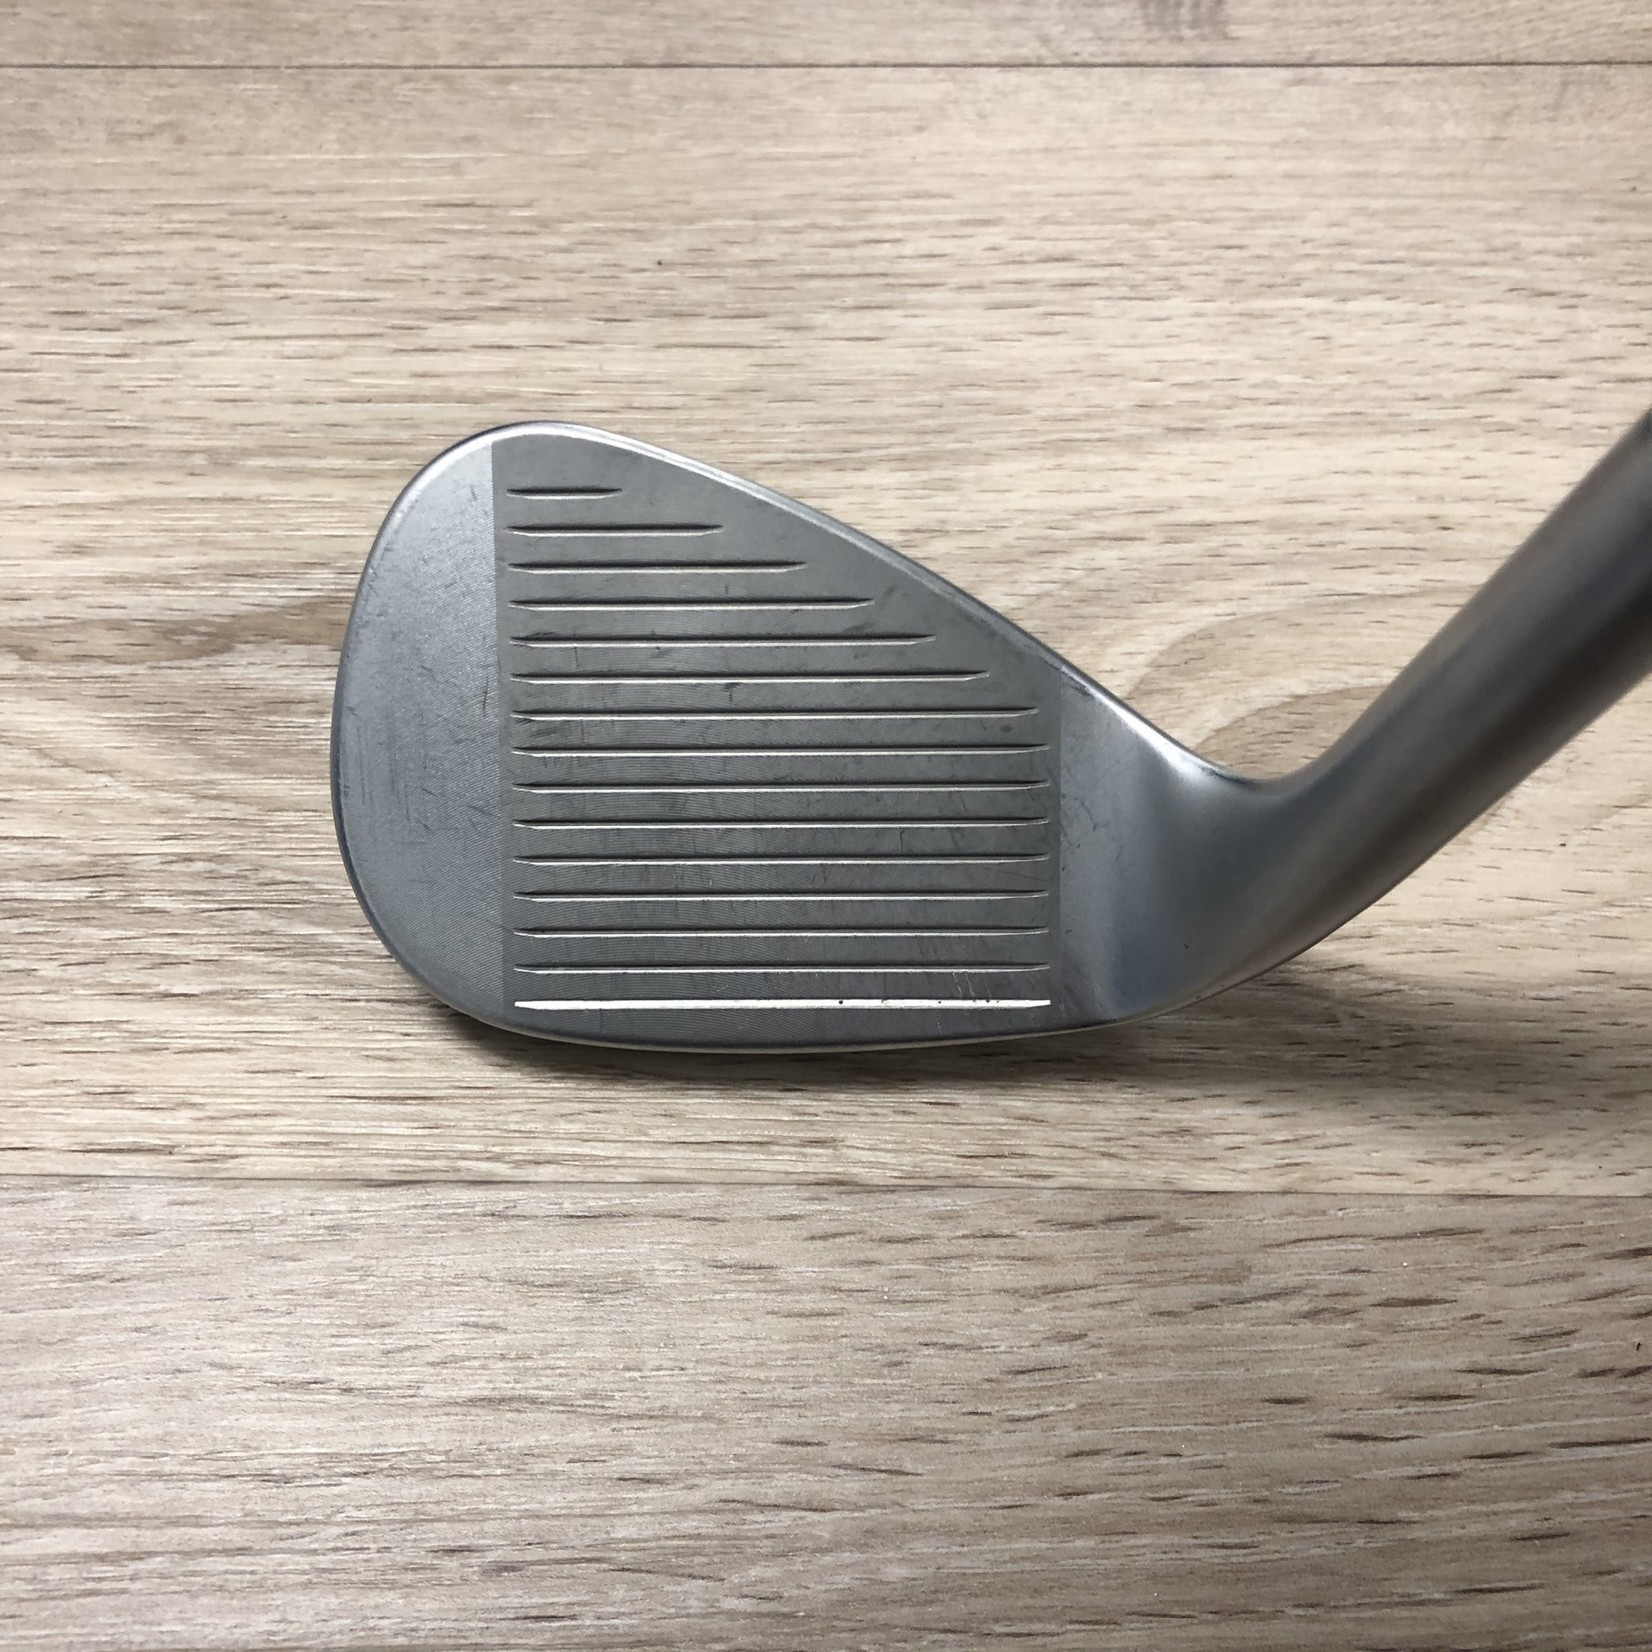 PING Ping Gorge Glide Wedge 50* SS (RH)